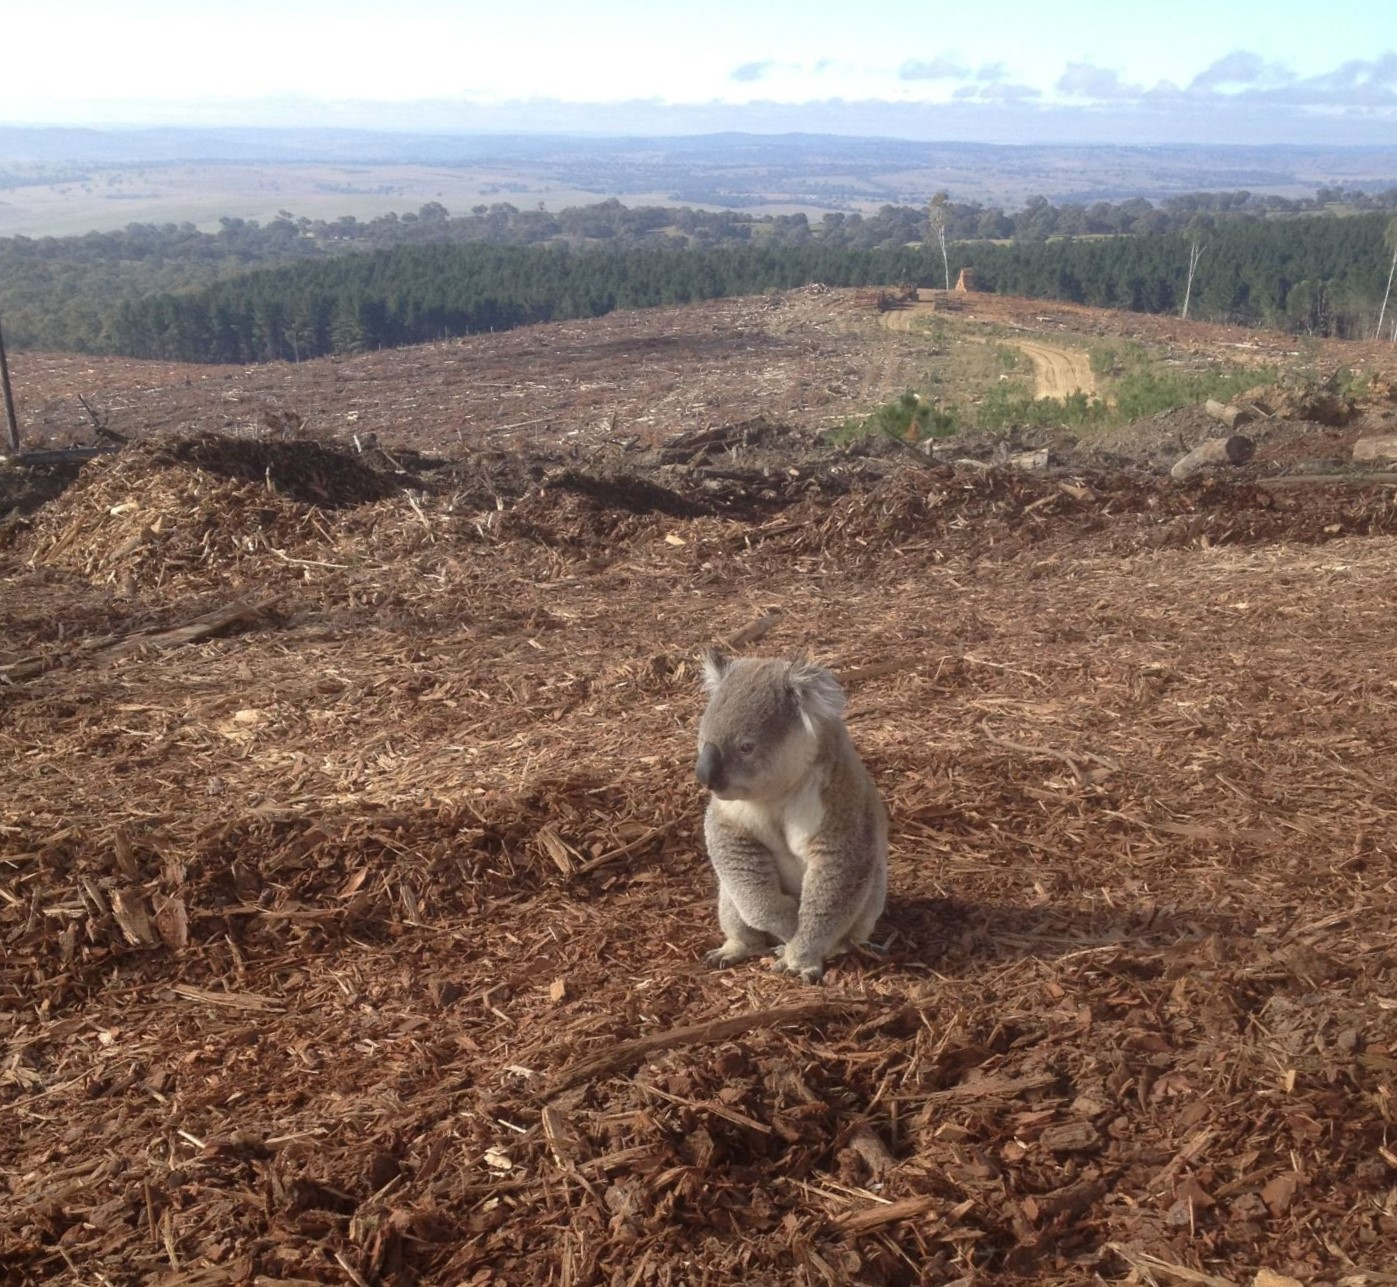 Alarming NSW land clearing rates calls for action to protect forests